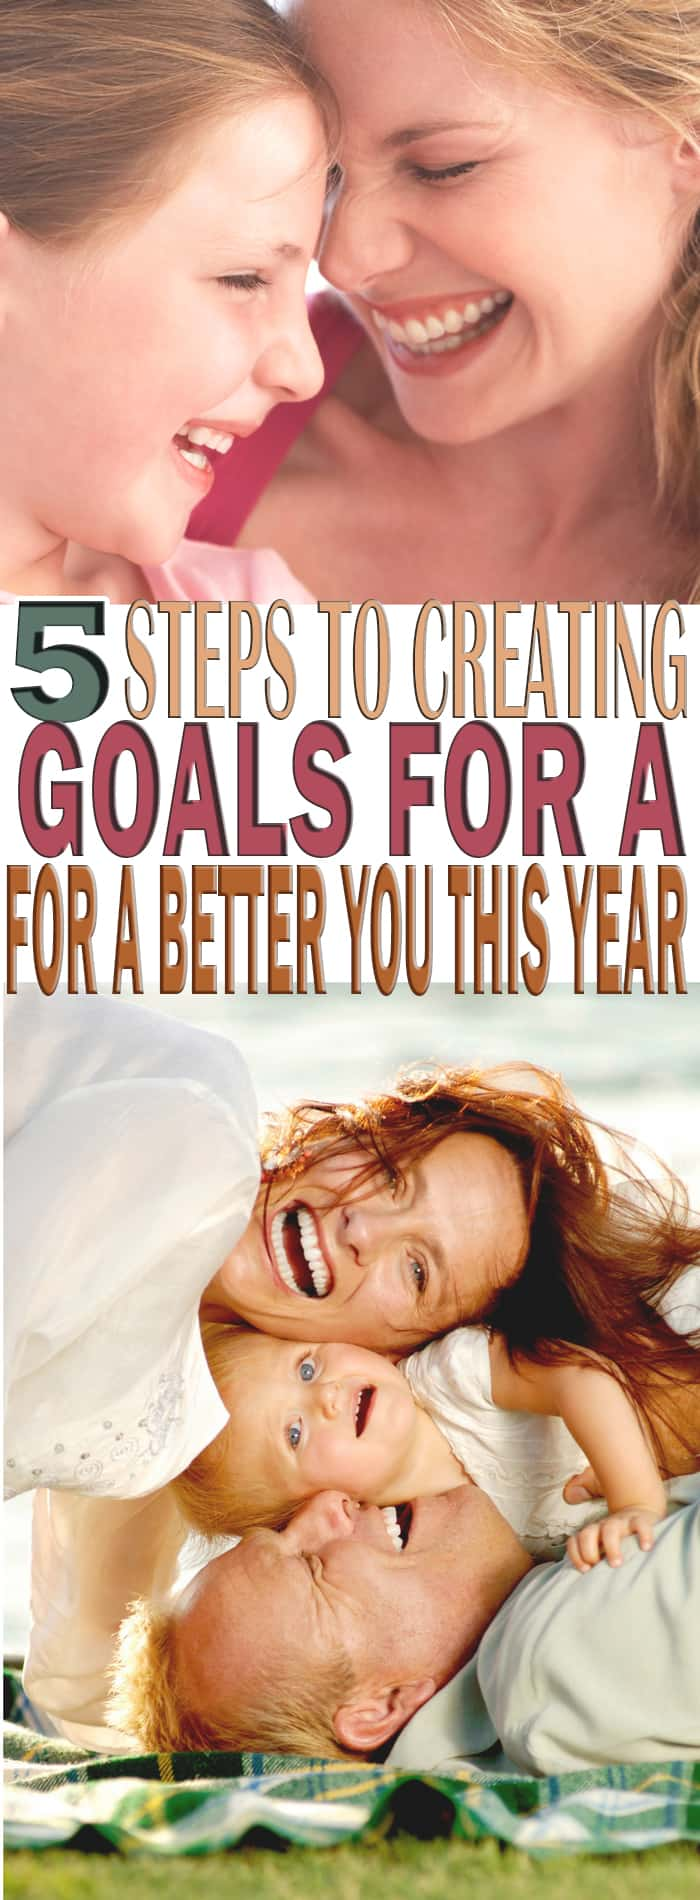 What are you doing this year to become a better you? What are your goals? Here are some steps to creating goals for a better you this year that will work! #goals #selflove #selfhelp #betteryou  via @mystayathome